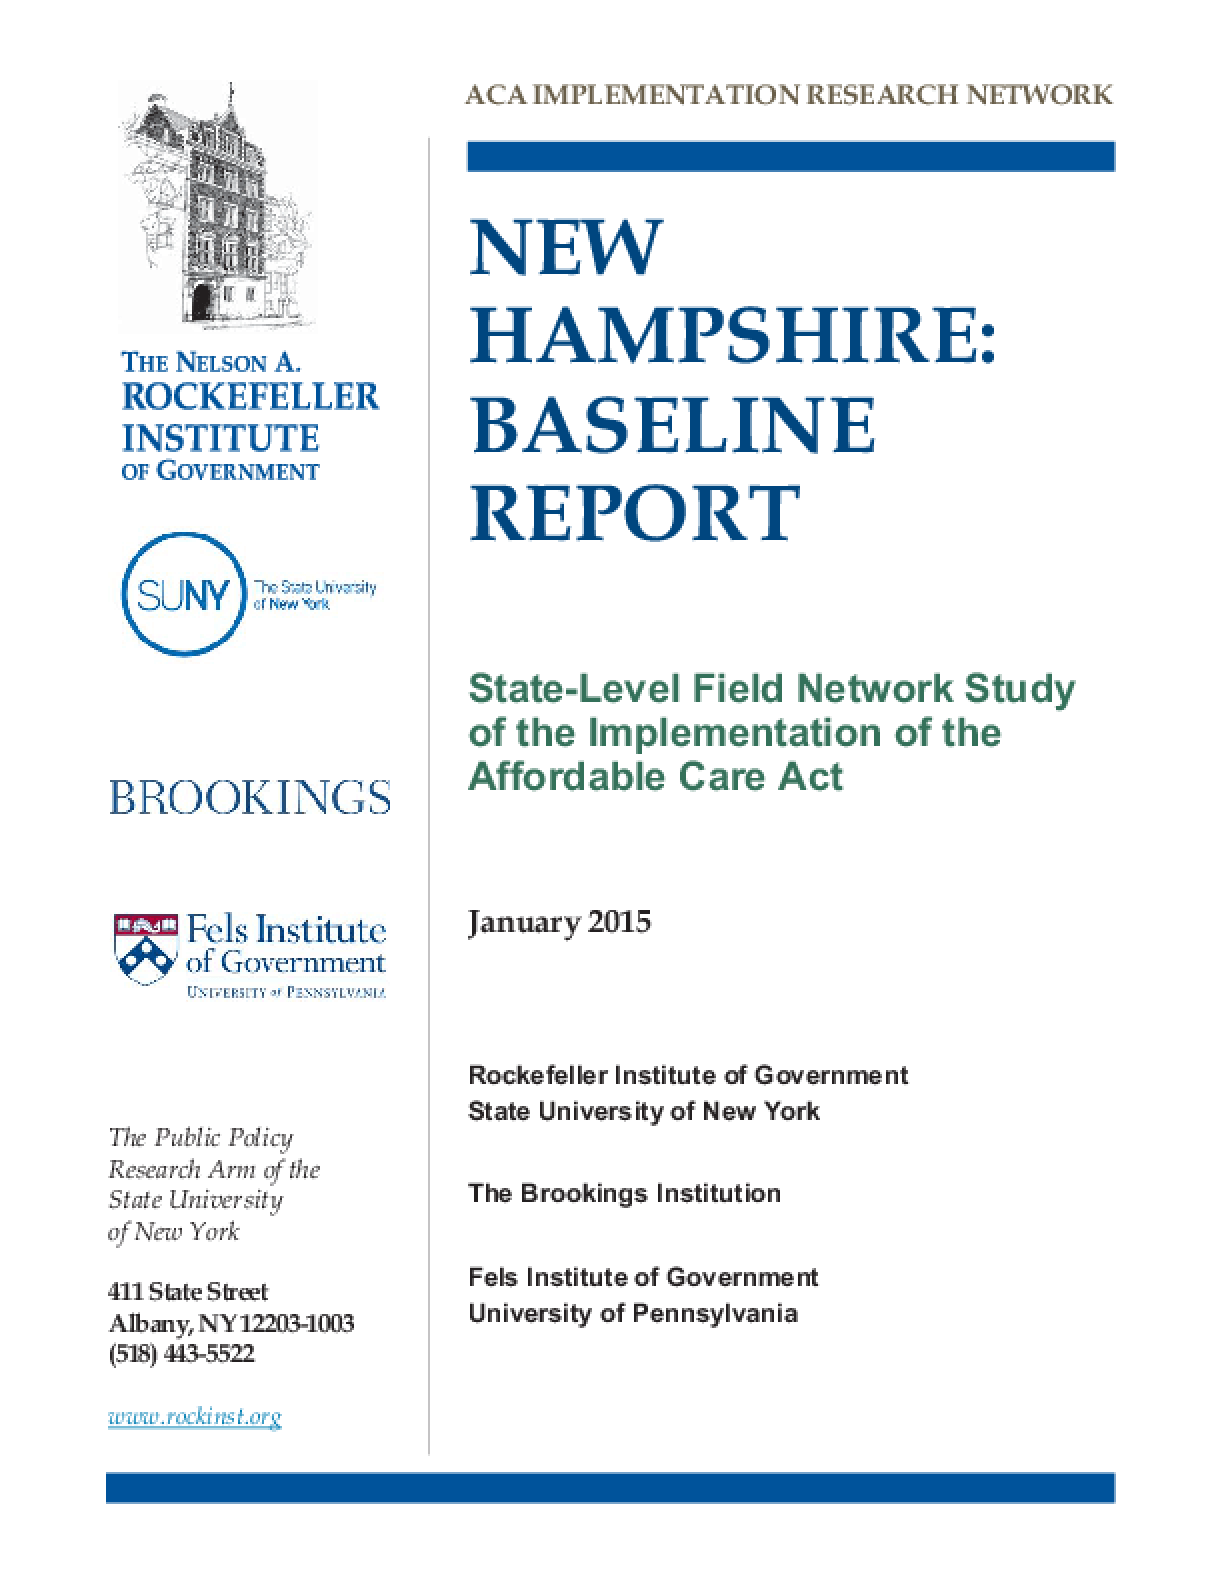 New Hampshire: Baseline Report - State Level Field Network Study of the Implementation of the Affordable Care Act